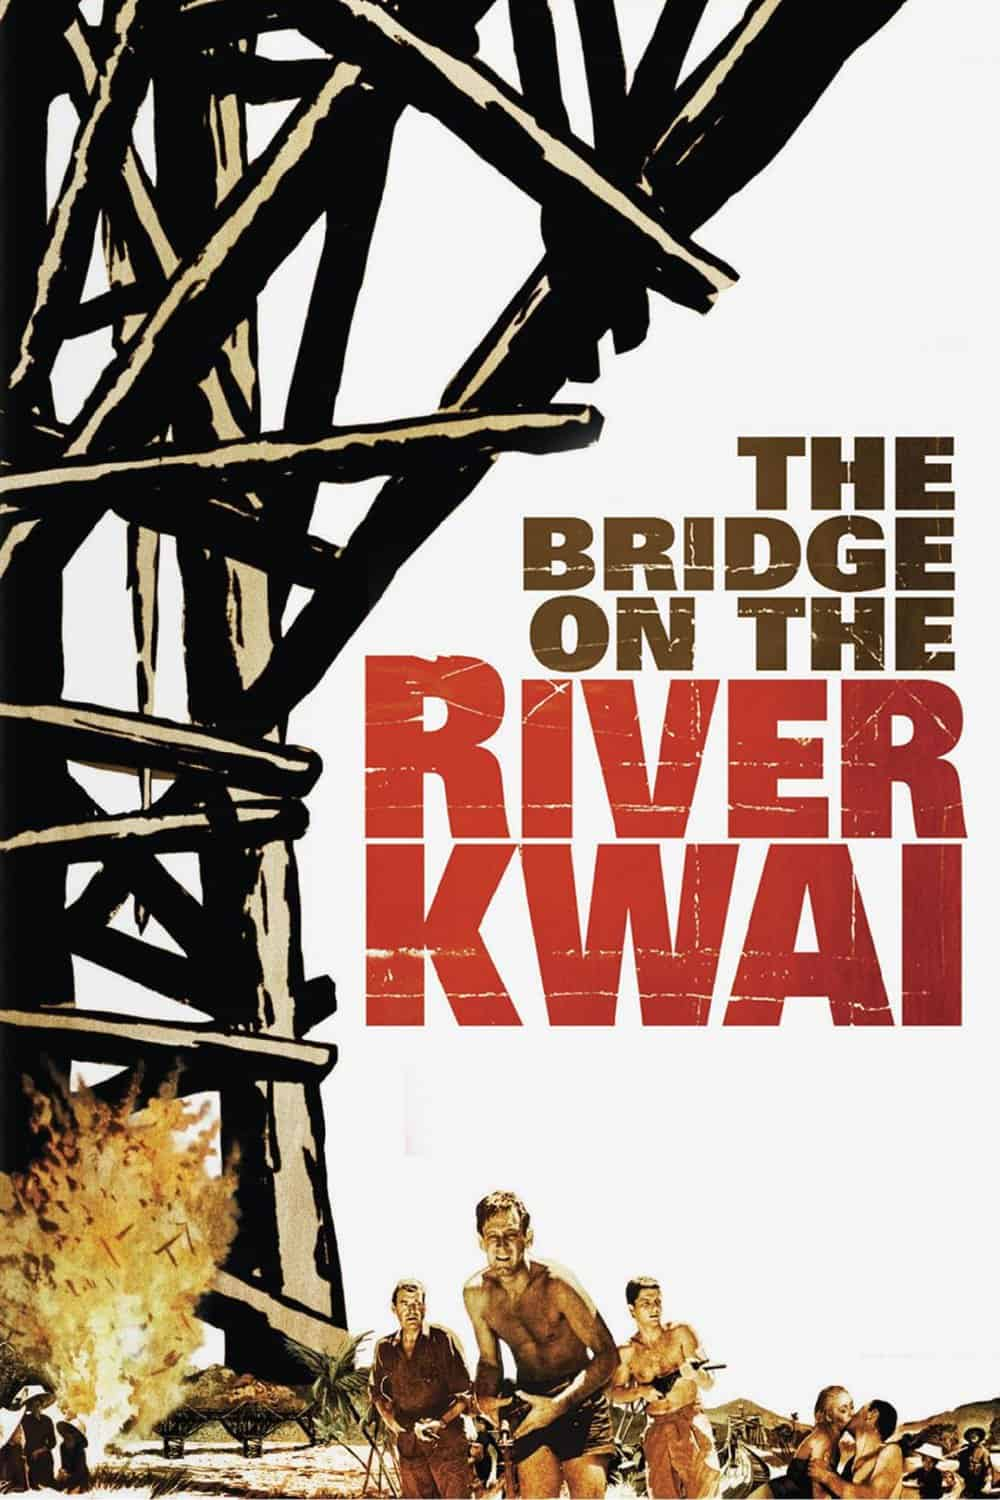 The Bridge on the River Kwai,1957